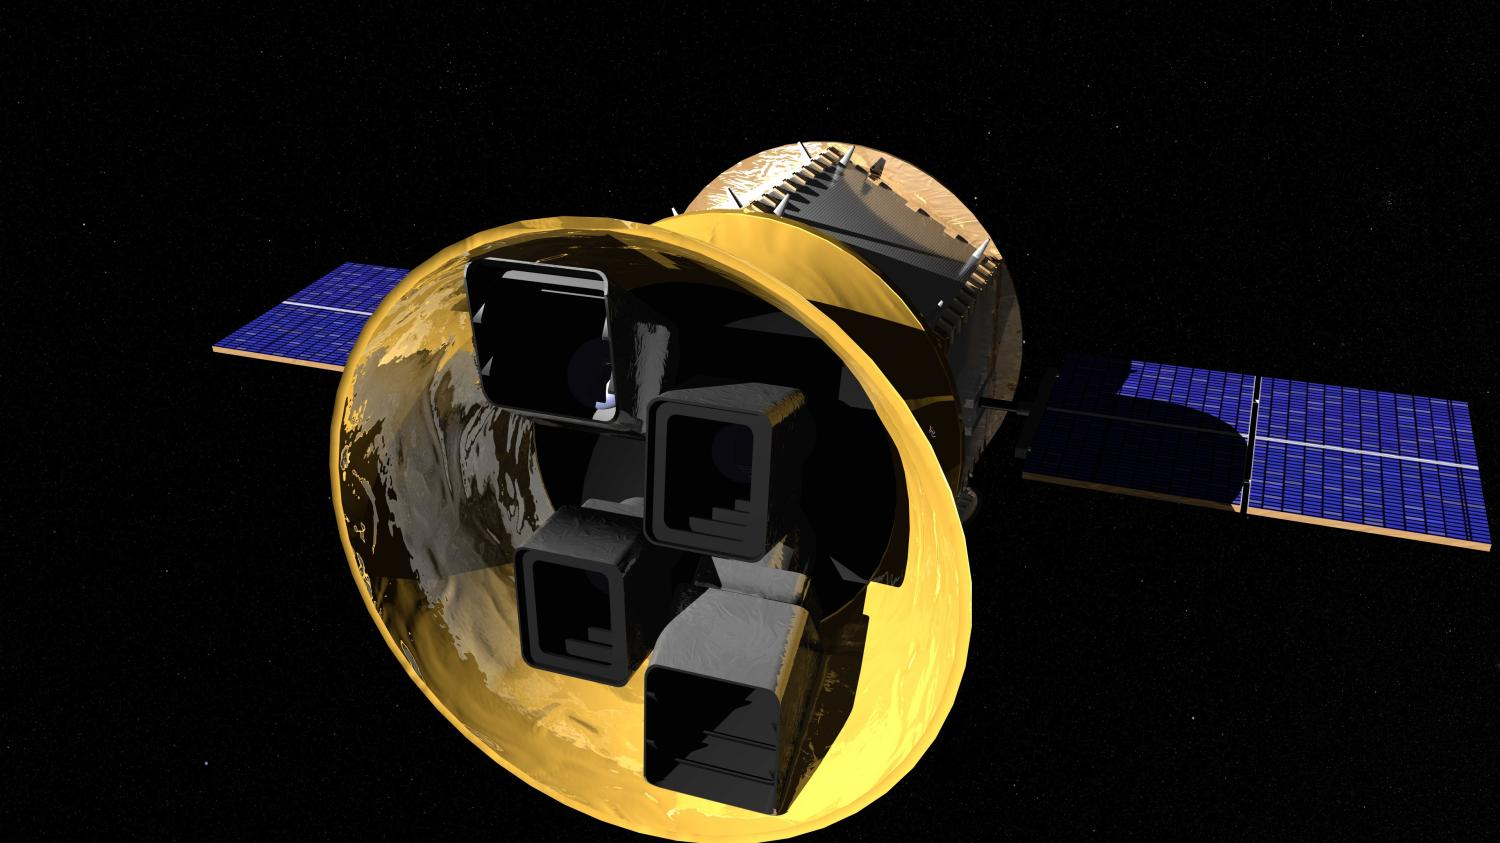 TESS telescope found an exoplanet in a red dwarf 97